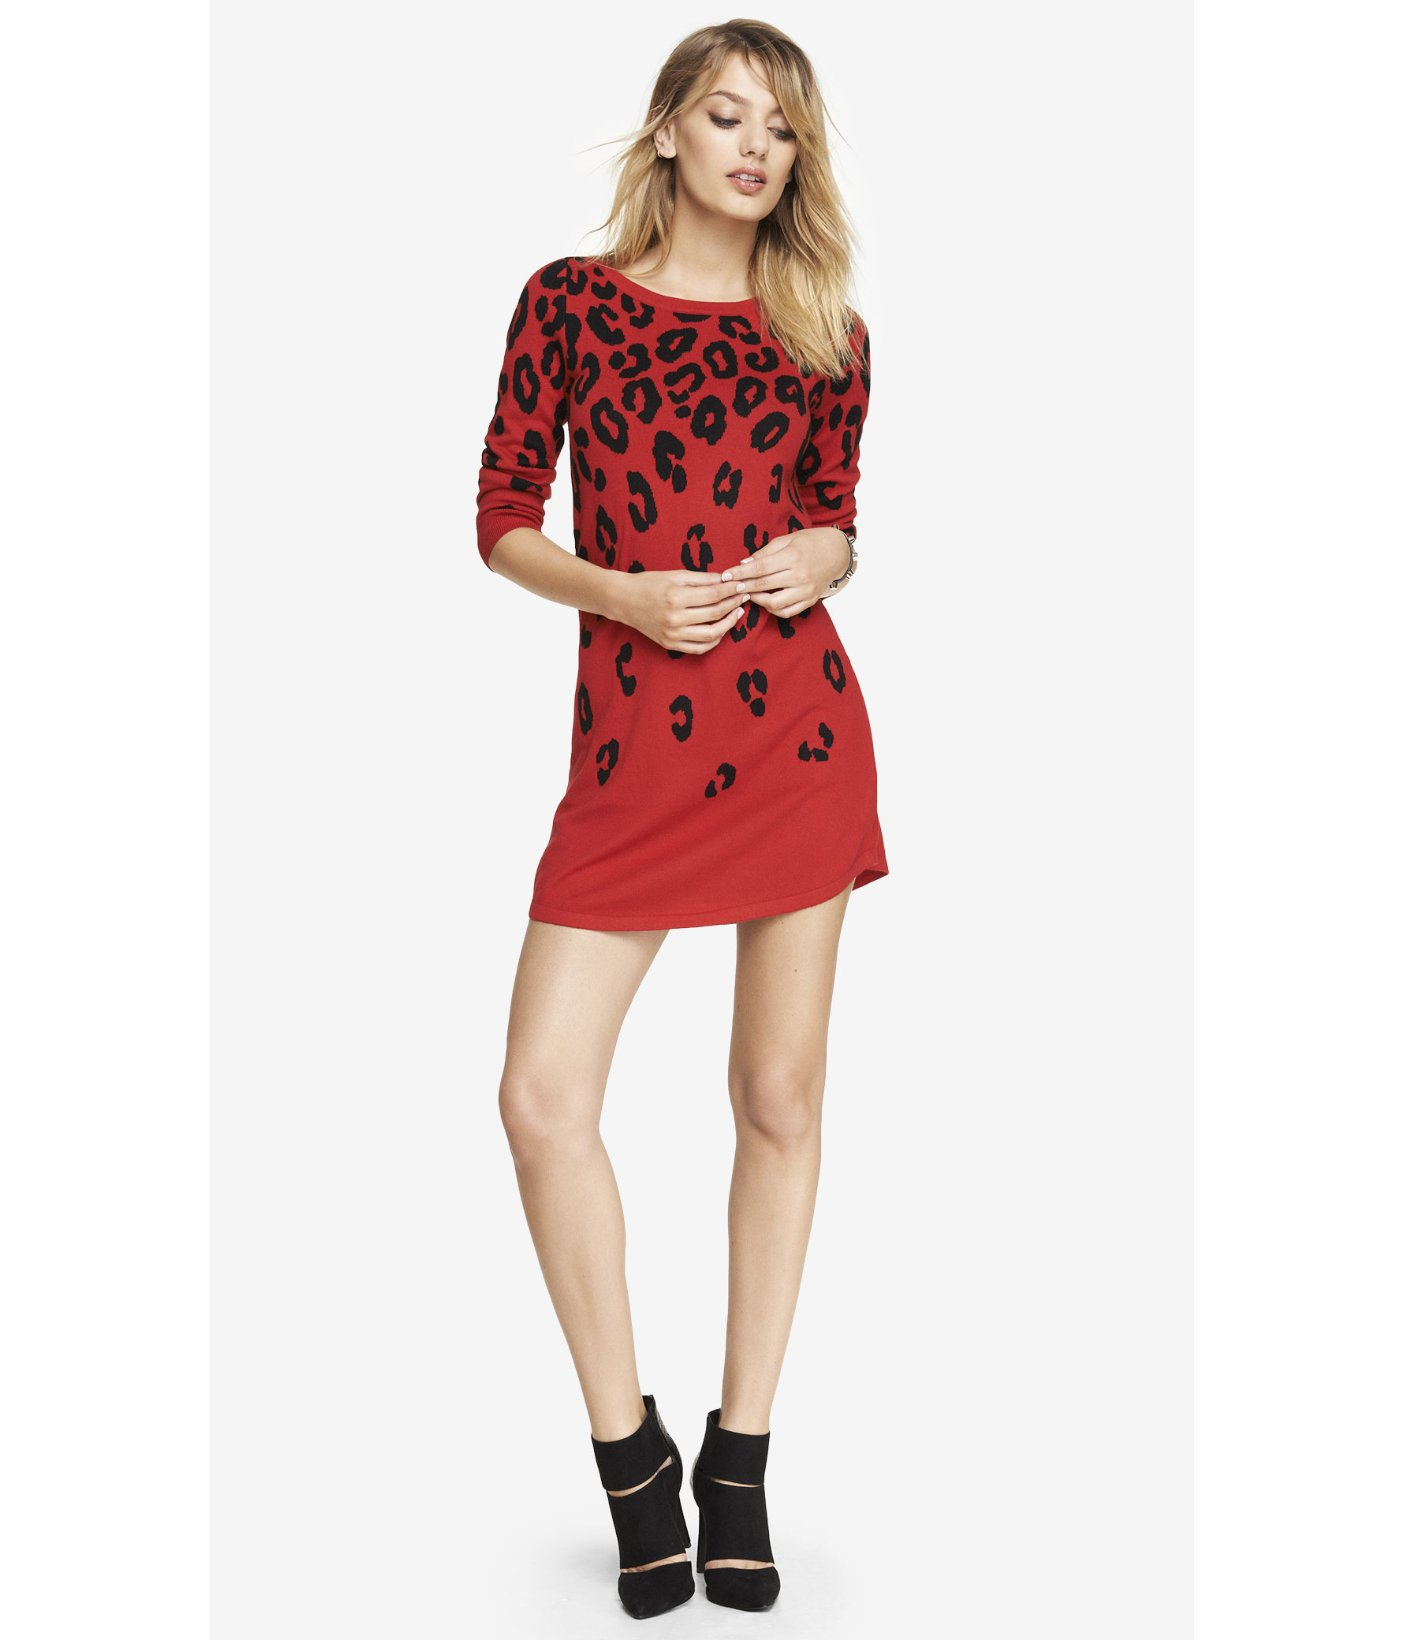 fe9cf9ebe6 Express Red Leopard Print Sweater Dress in Red - Lyst